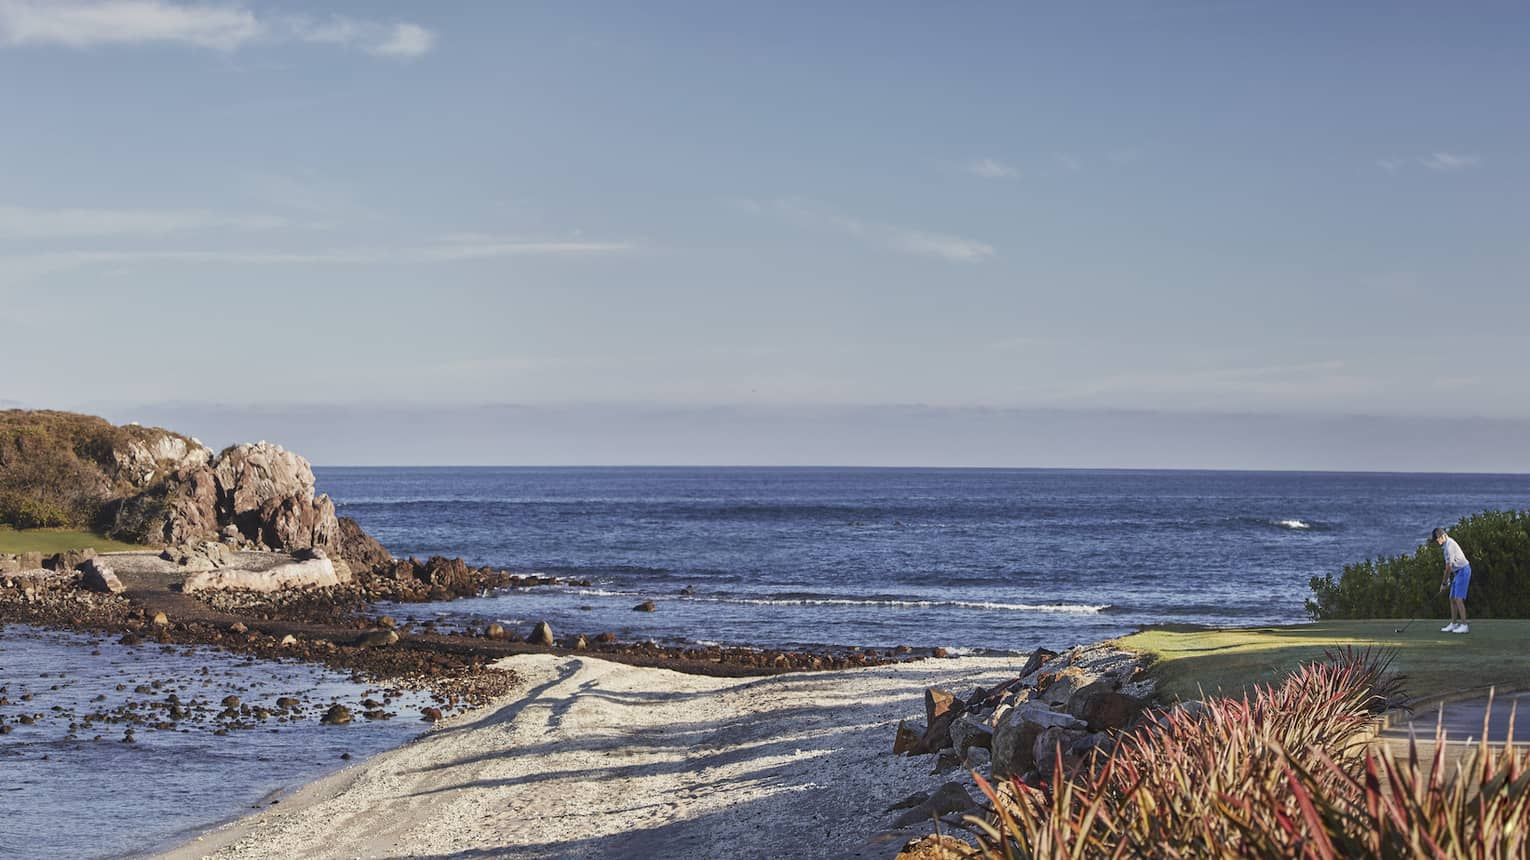 Sweeping view of golf course greens extending onto rocky island along coast